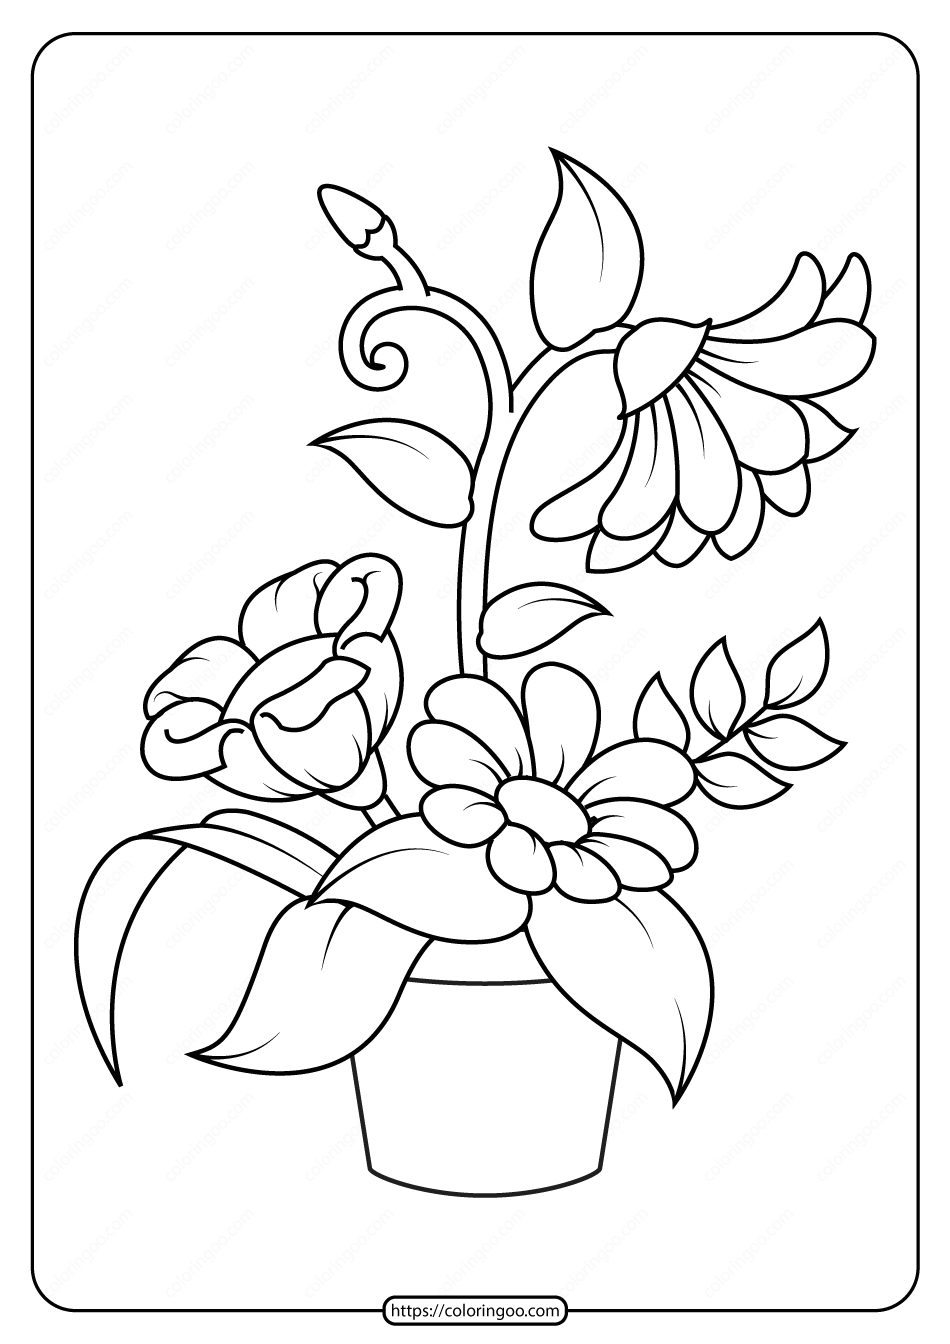 coloring page of a flower flowers printing pages creative children of a coloring page flower